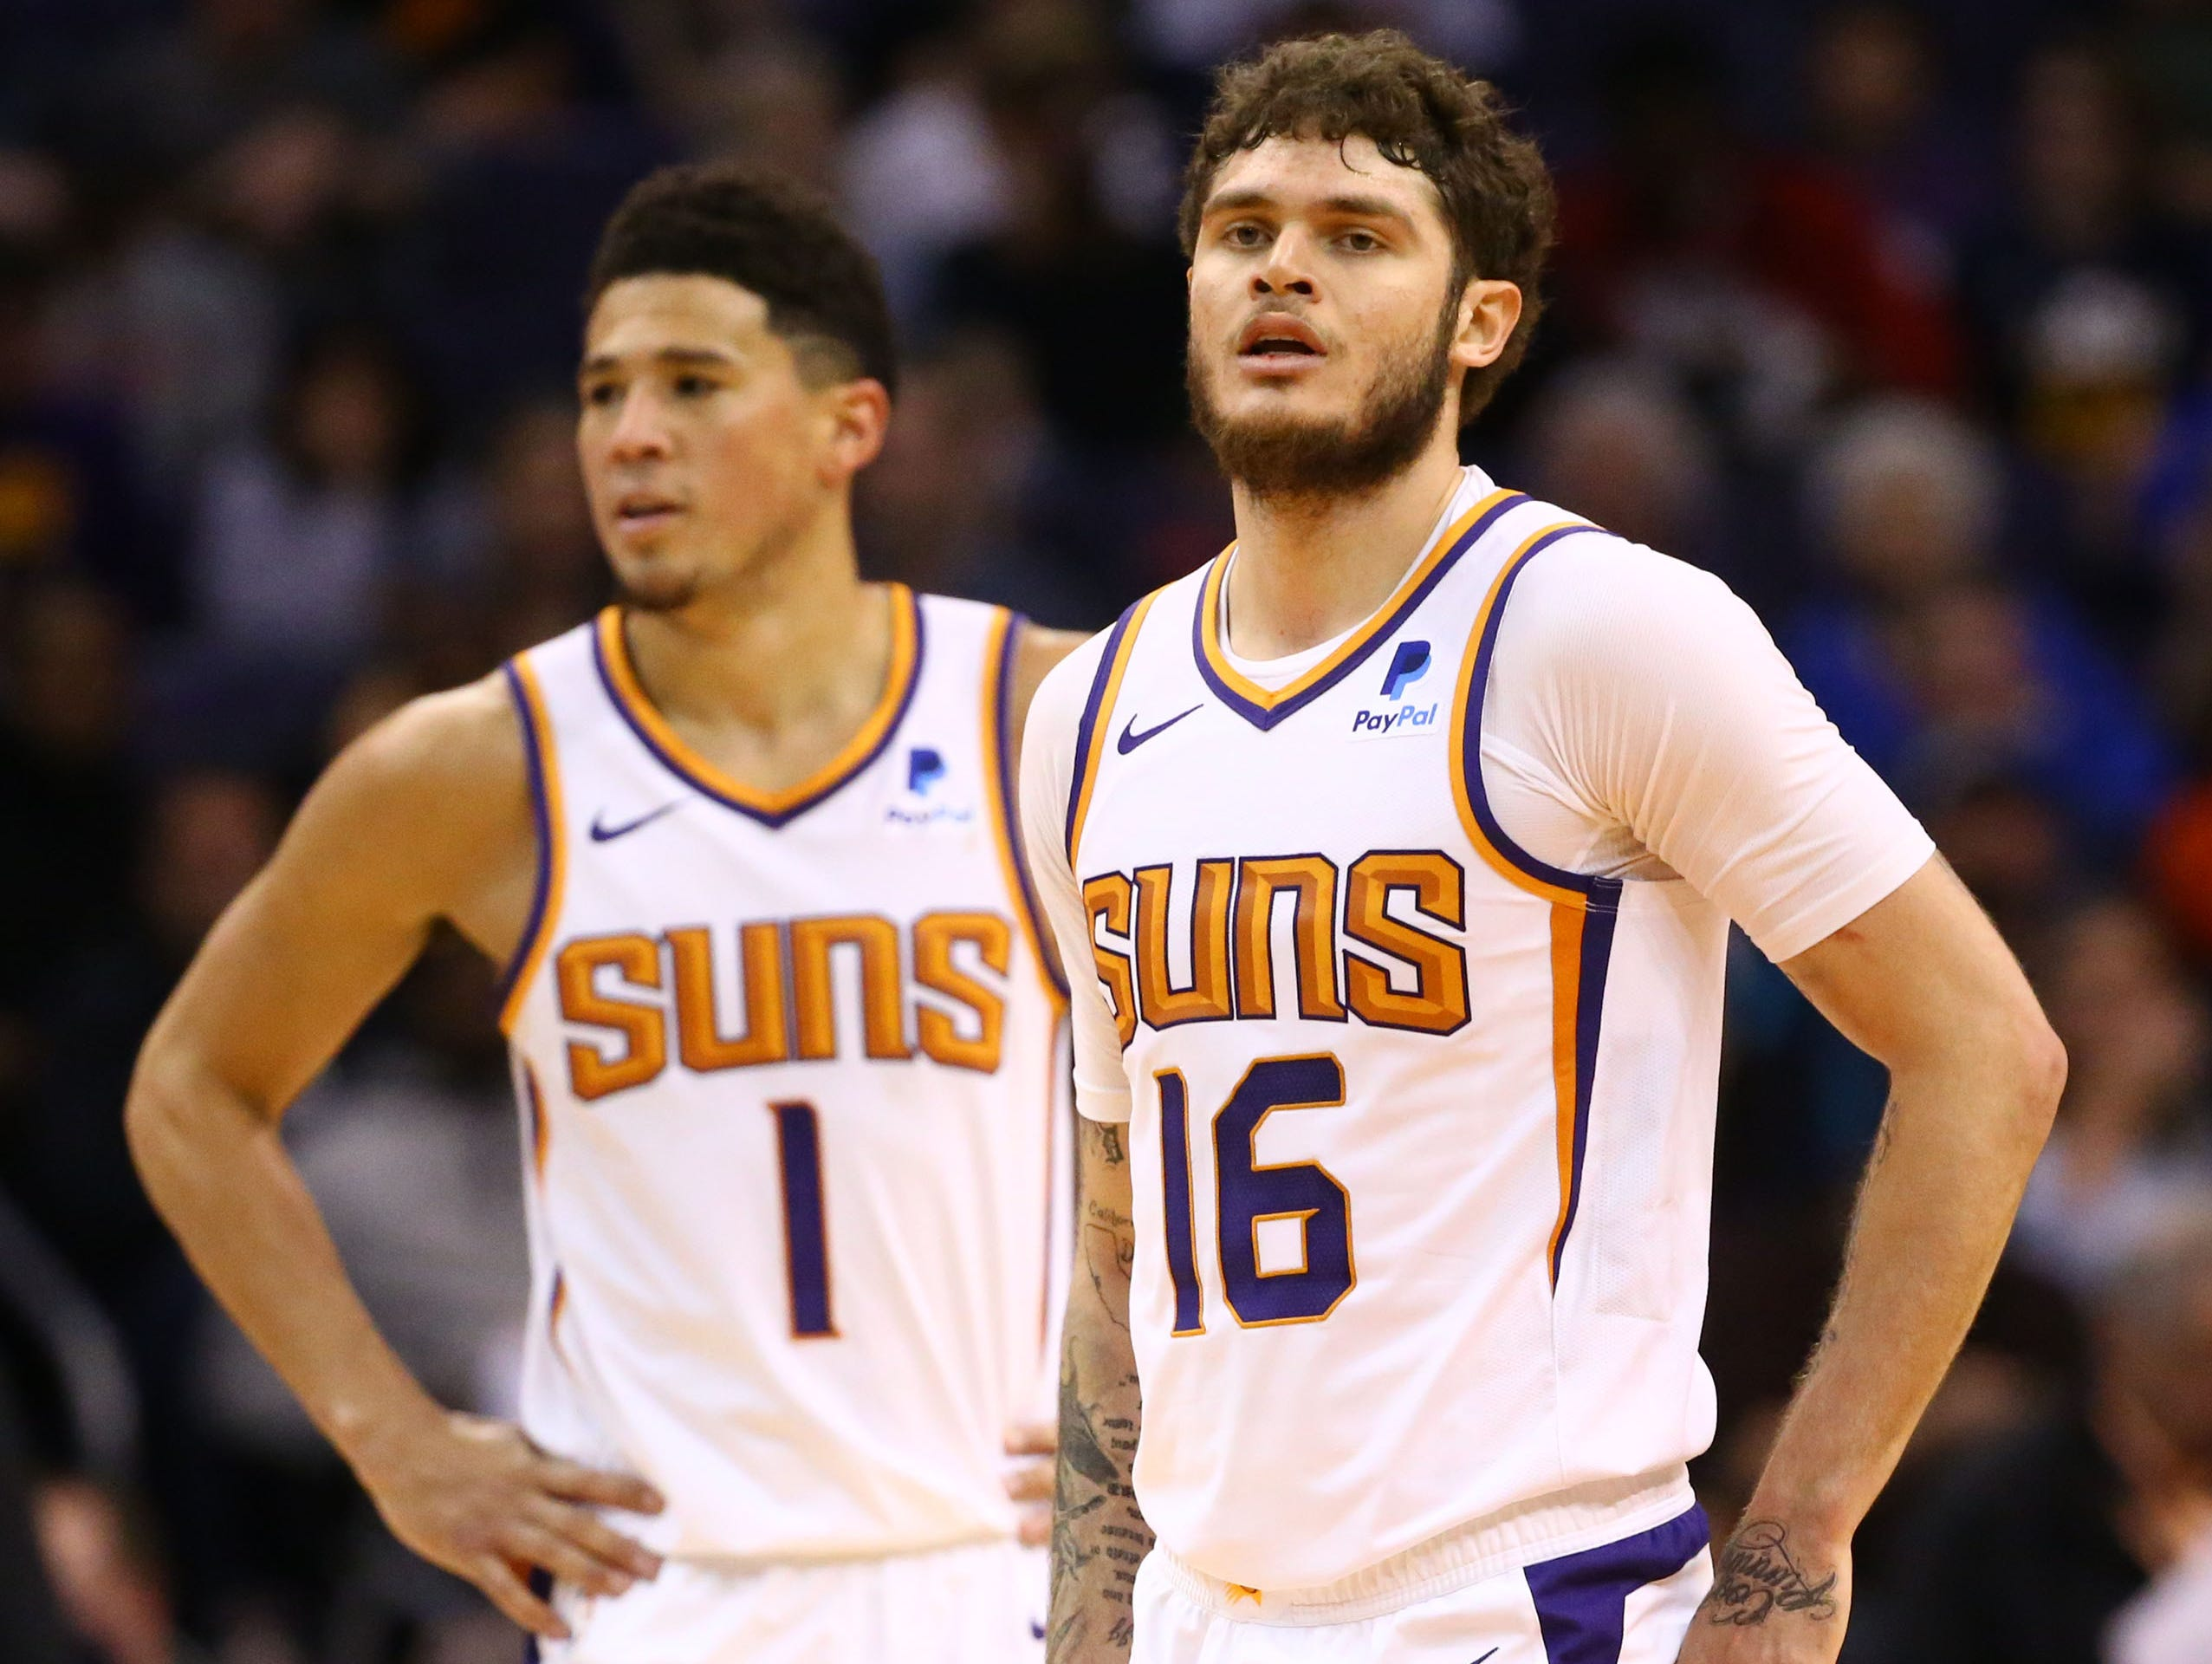 Phoenix Suns guard Devin Booker (1) and Phoenix Suns guard Tyler Johnson (16) against the Utah Jazz in the second half on Mar. 13, 2019 at Talking Stick Resort Arena in Phoenix, Ariz.